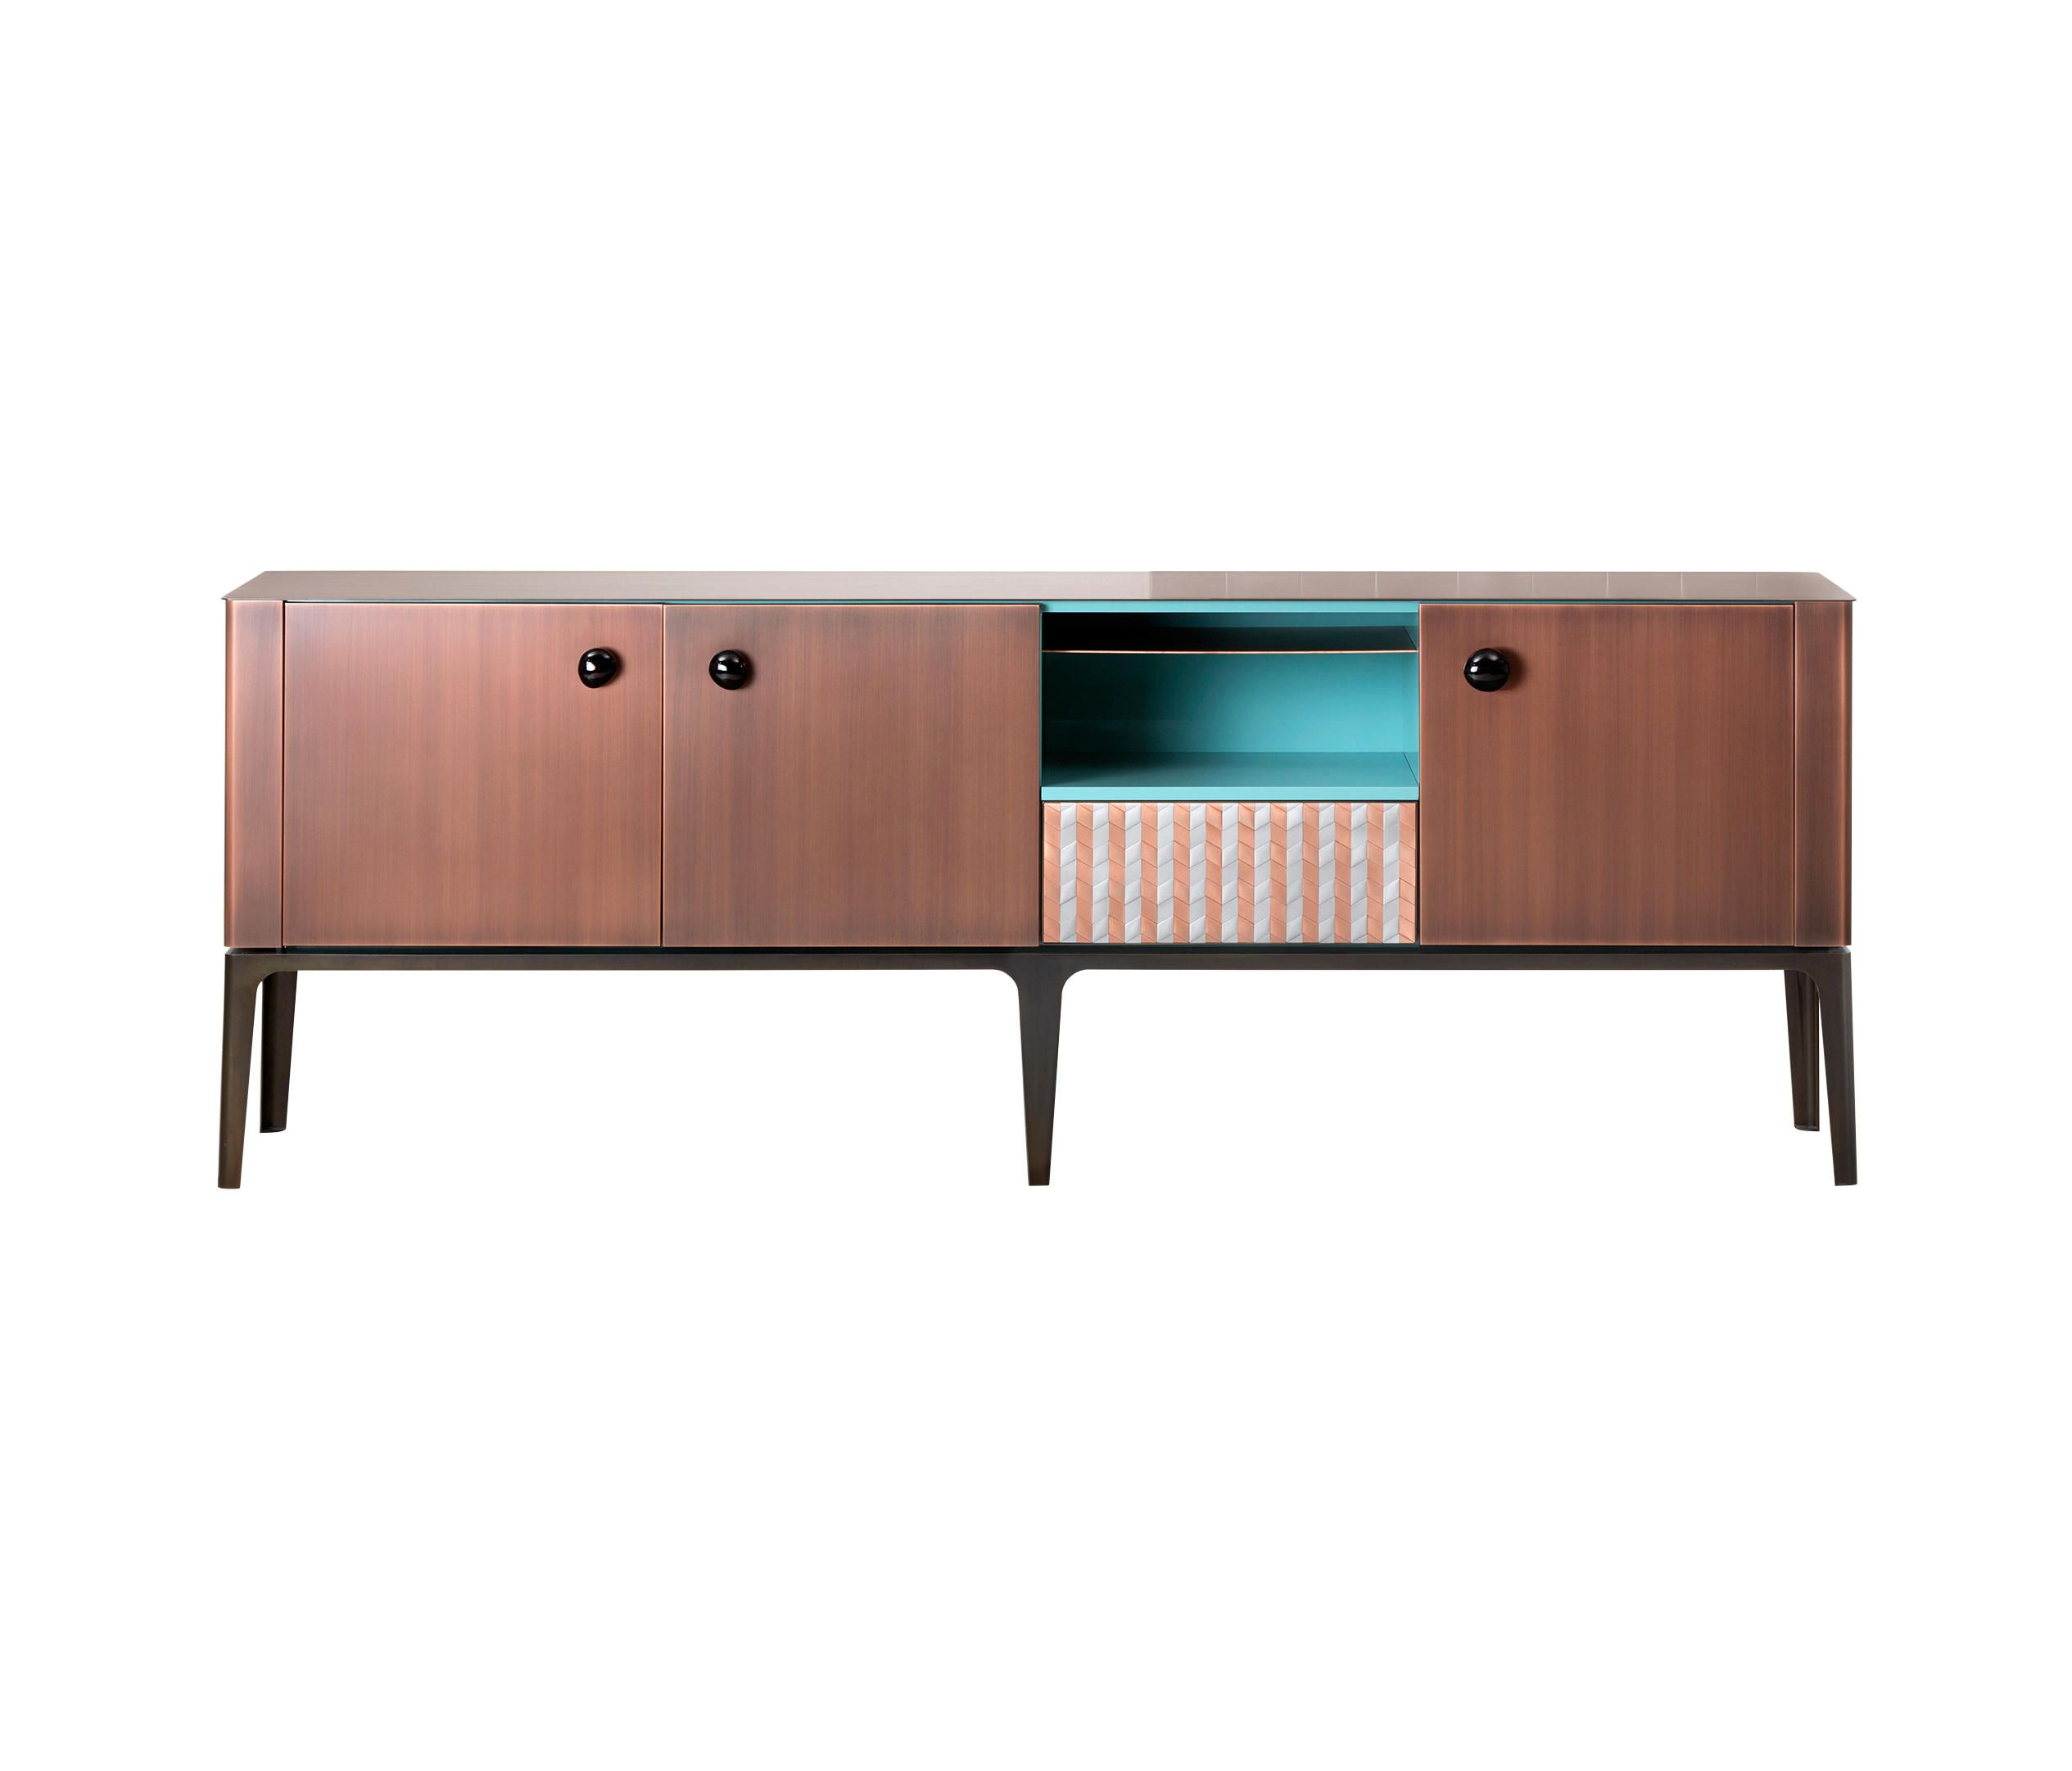 Gioiellode Castelli | Sideboards | Mobili / Furniture With Most Recent Castelli Sideboards (#5 of 20)